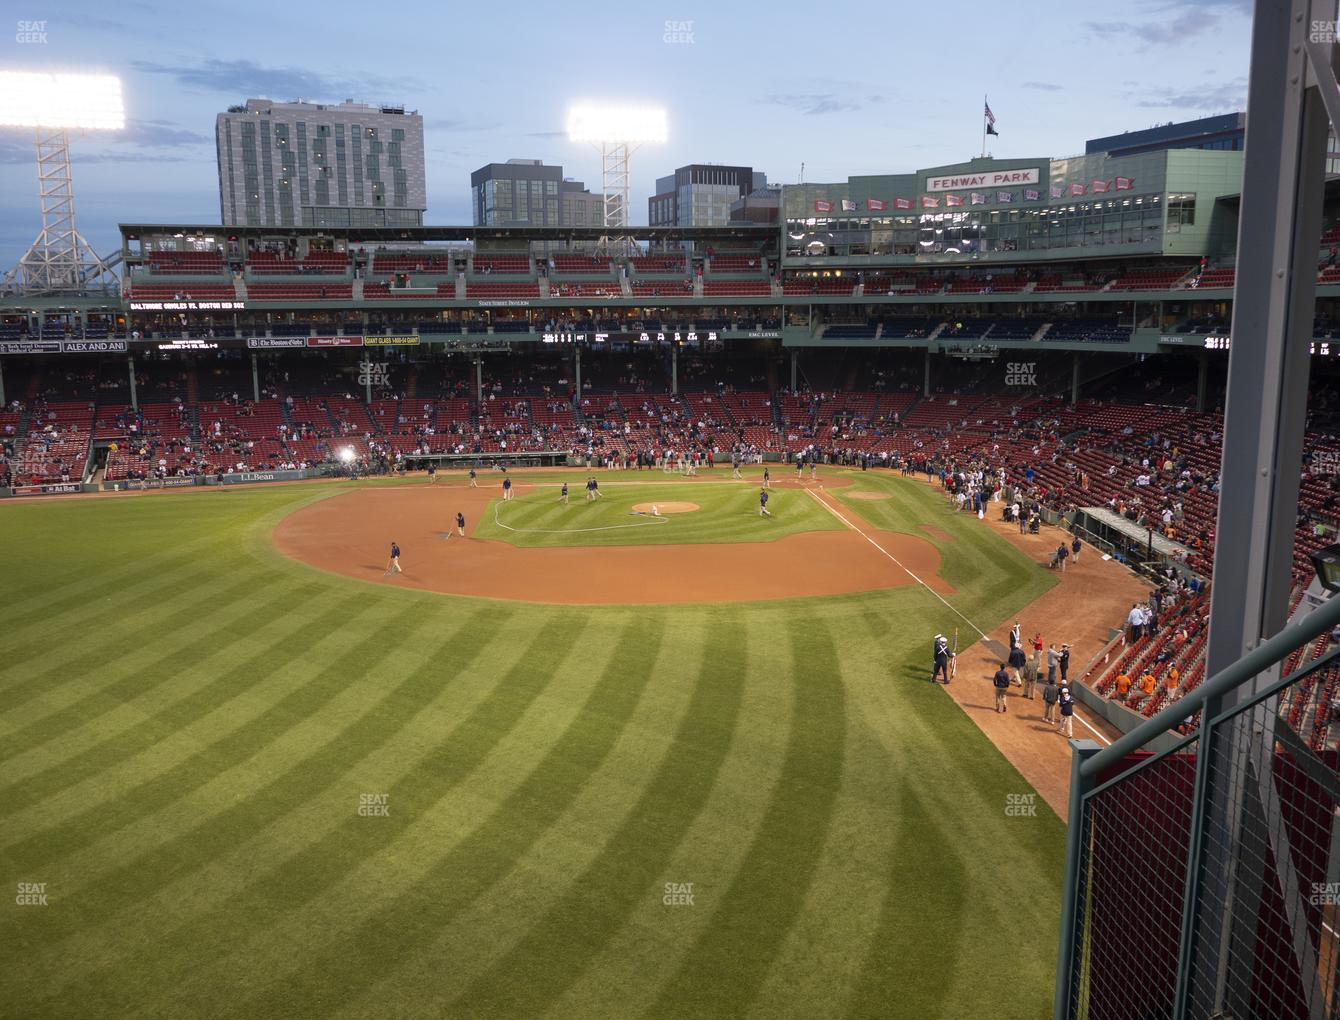 Boston Red Sox at Fenway Park Green Monster 3 View